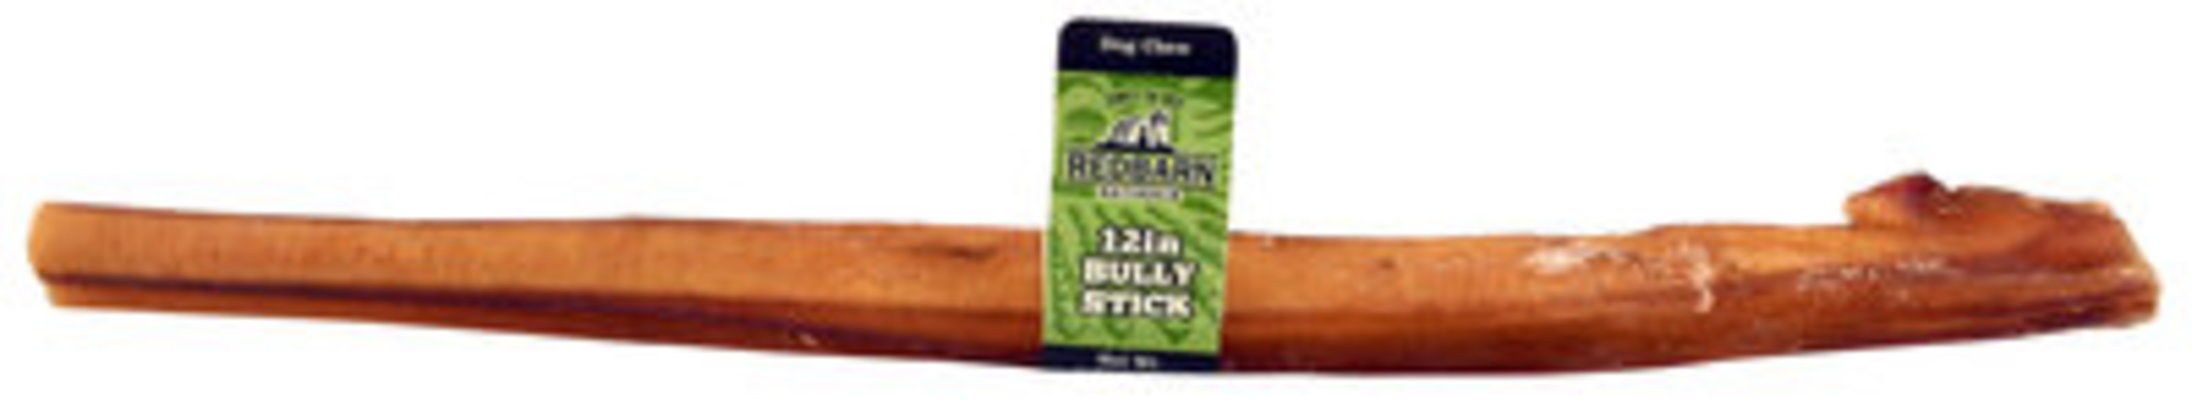 "Redbarn Low Odor 12"" Bully Sticks"